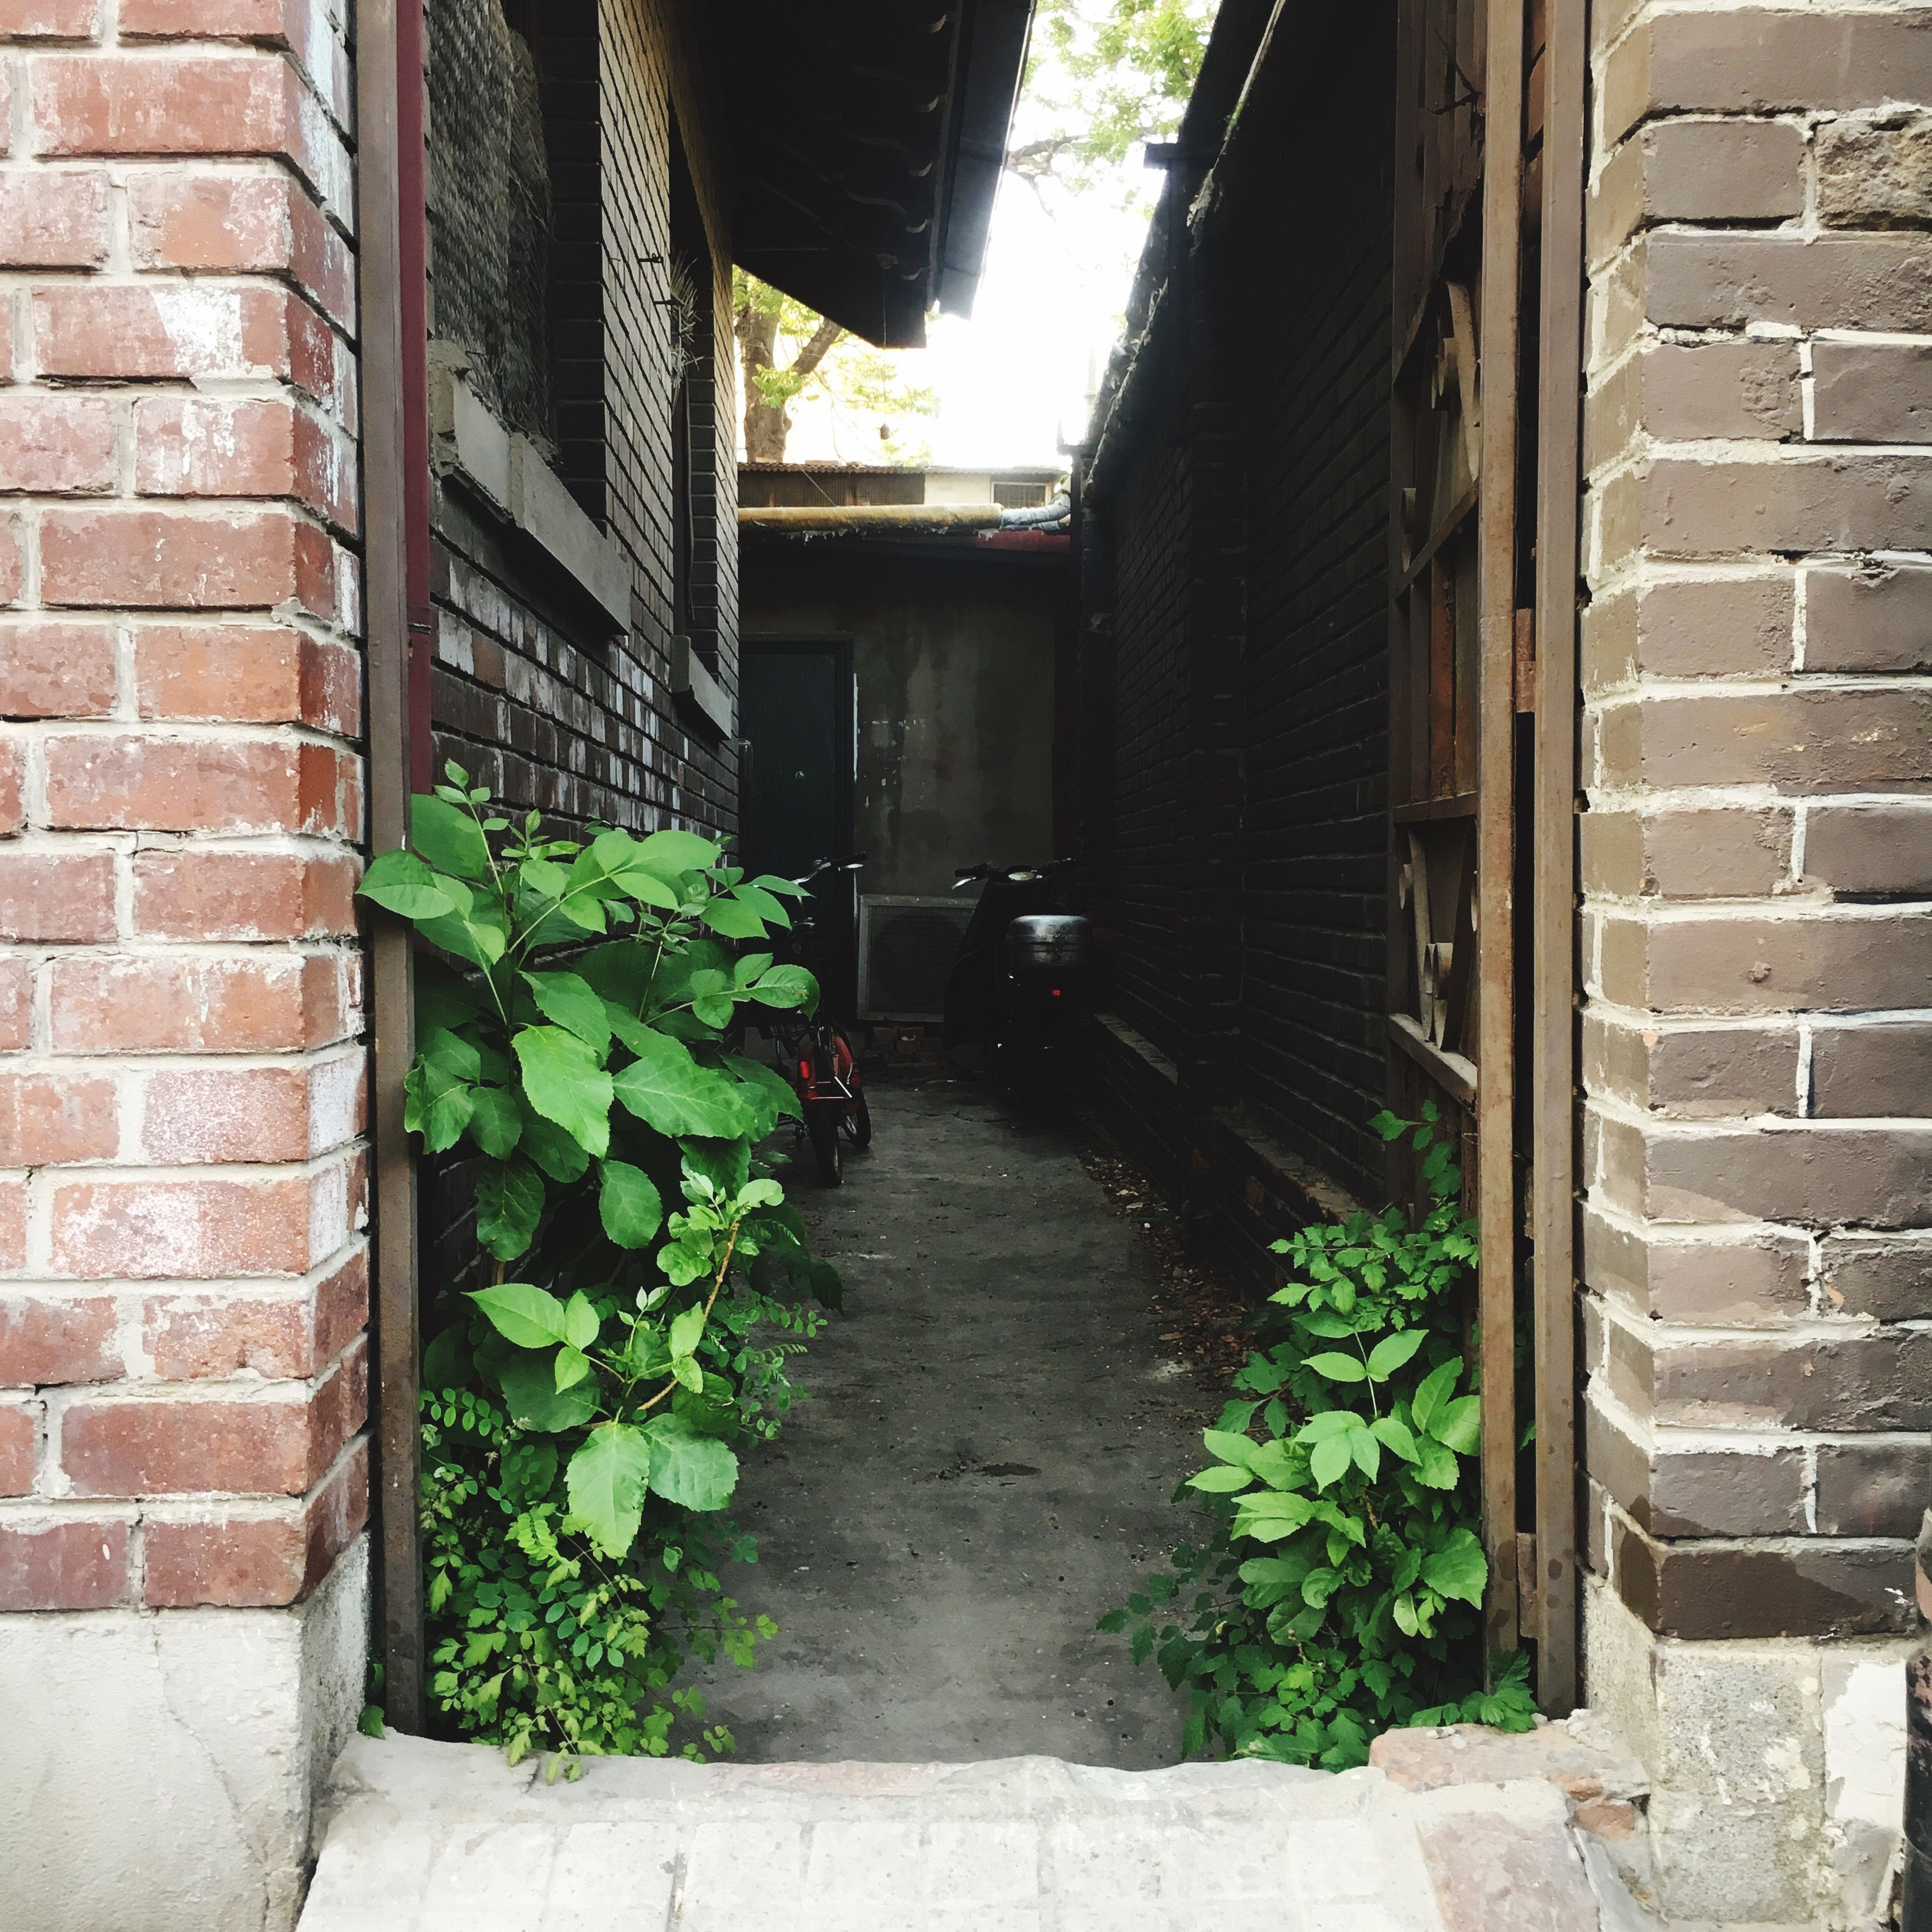 architecture, building exterior, plant, built structure, house, brick wall, outdoors, no people, day, potted plant, growth, window, nature, window box